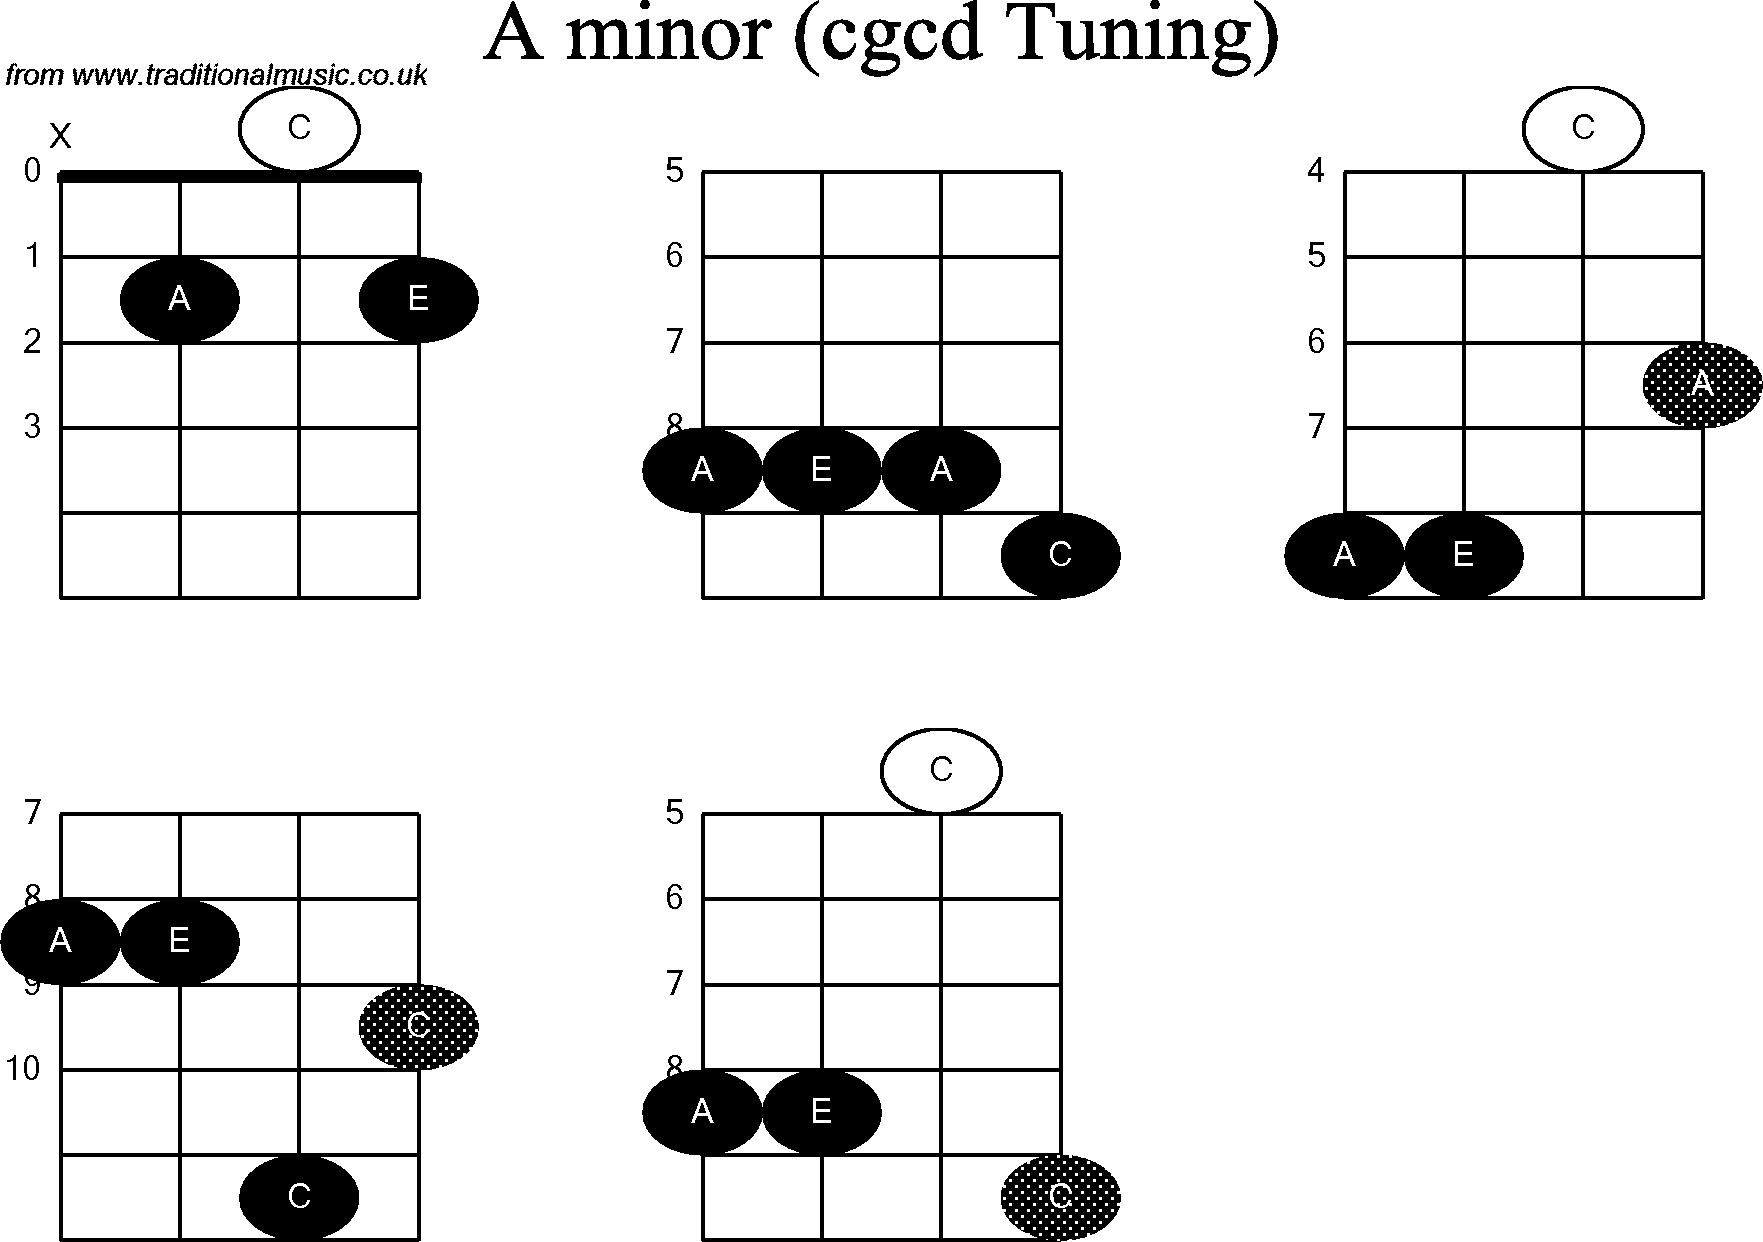 Chord diagrams for: Banjo(Double C) A Minor